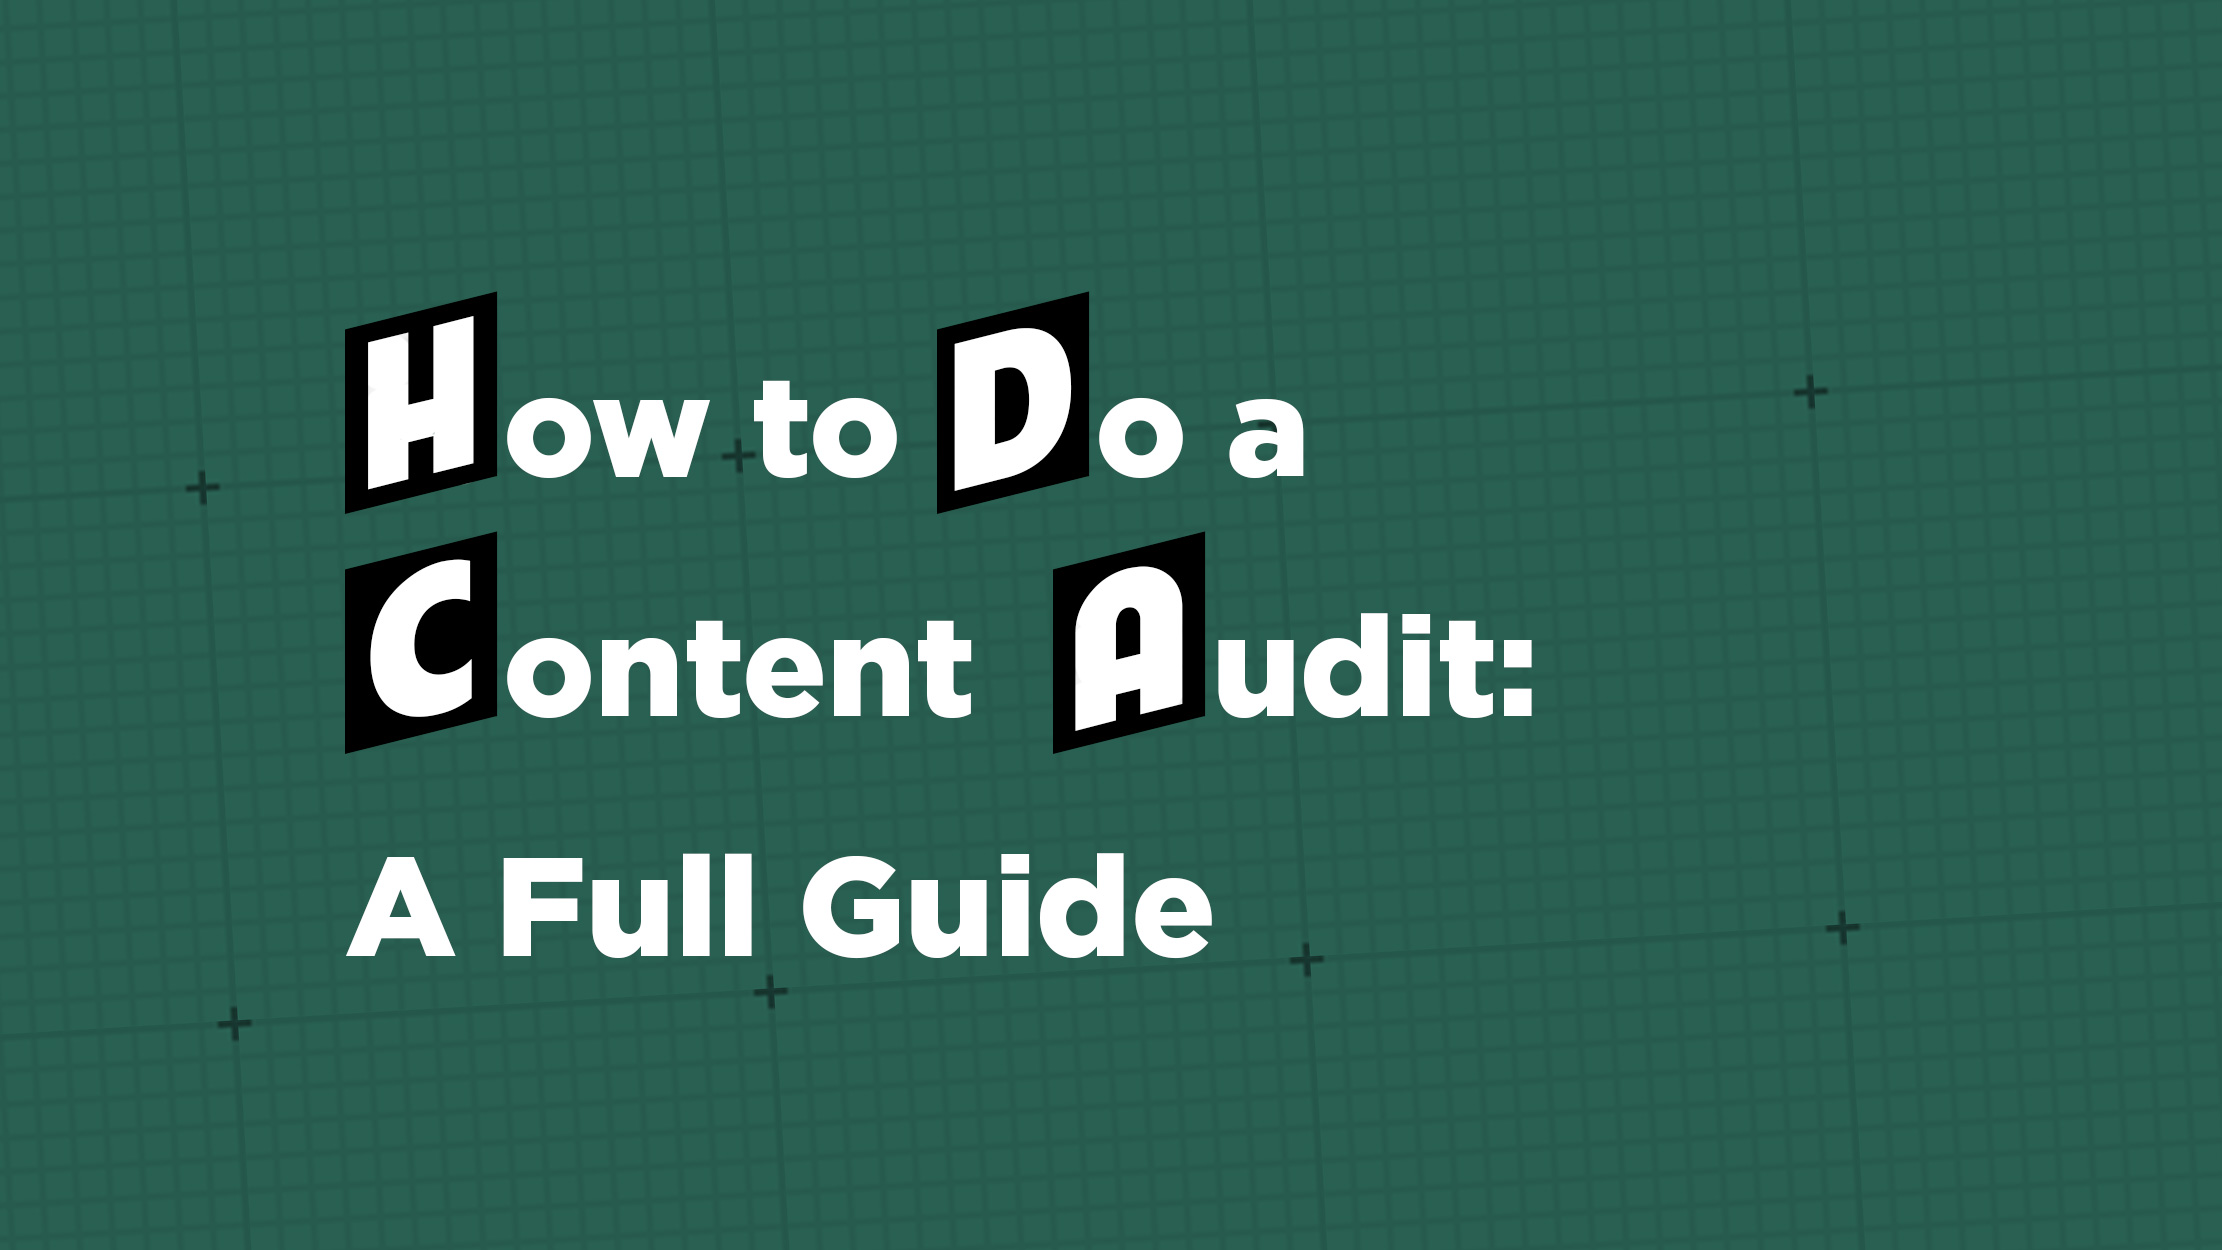 How to Do a Content Audit: A Full Guide